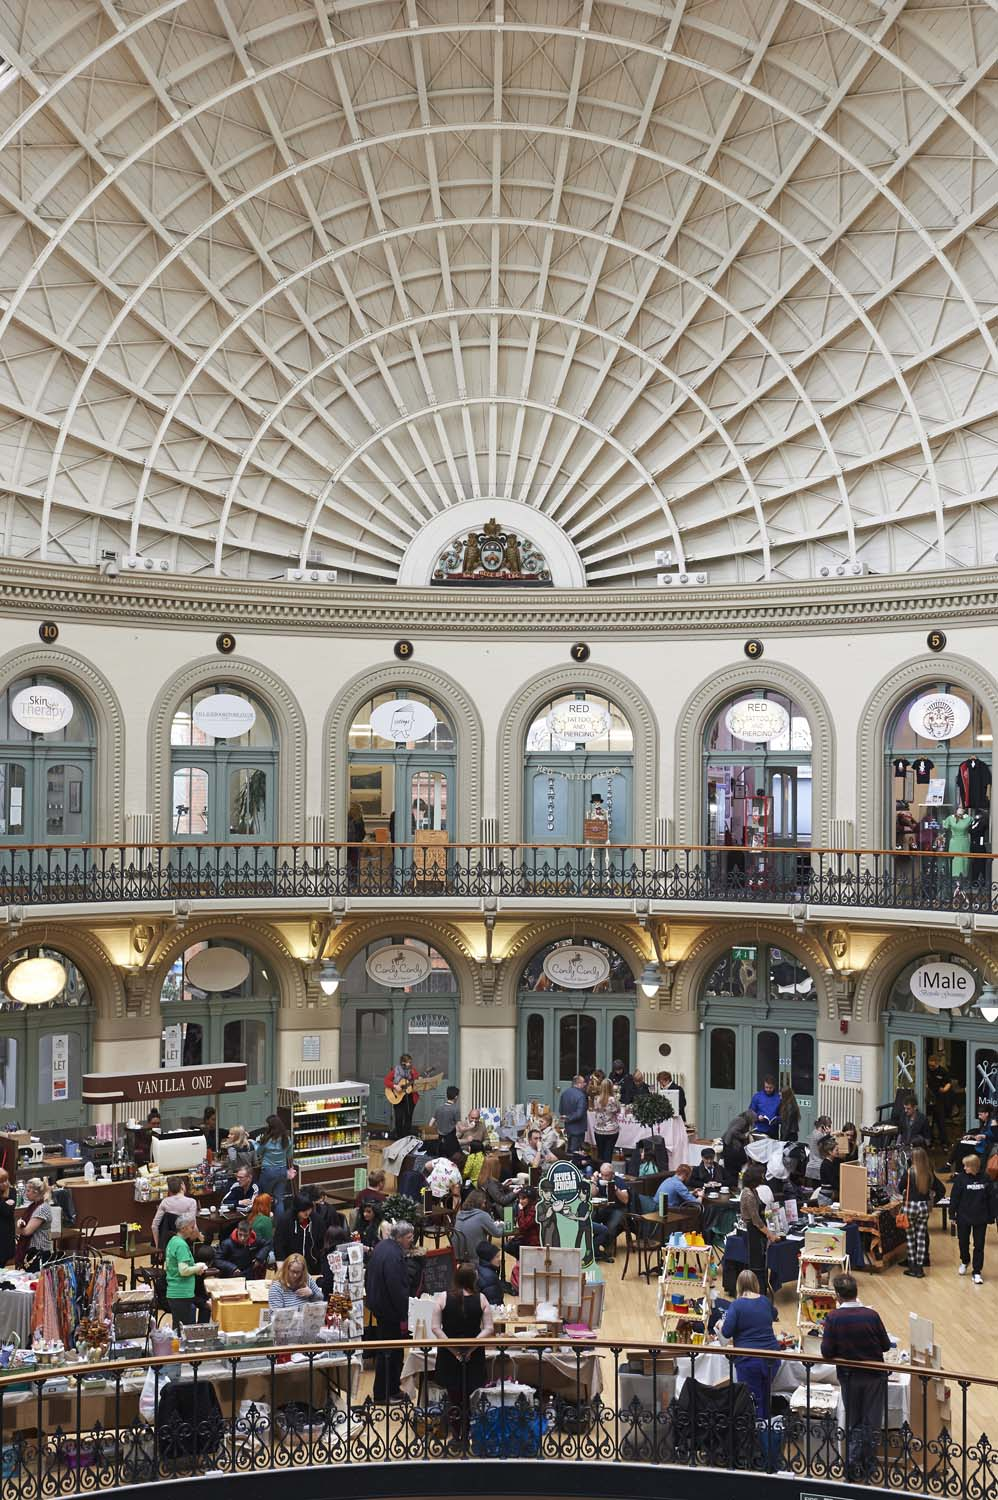 Corn Exchange Leeds